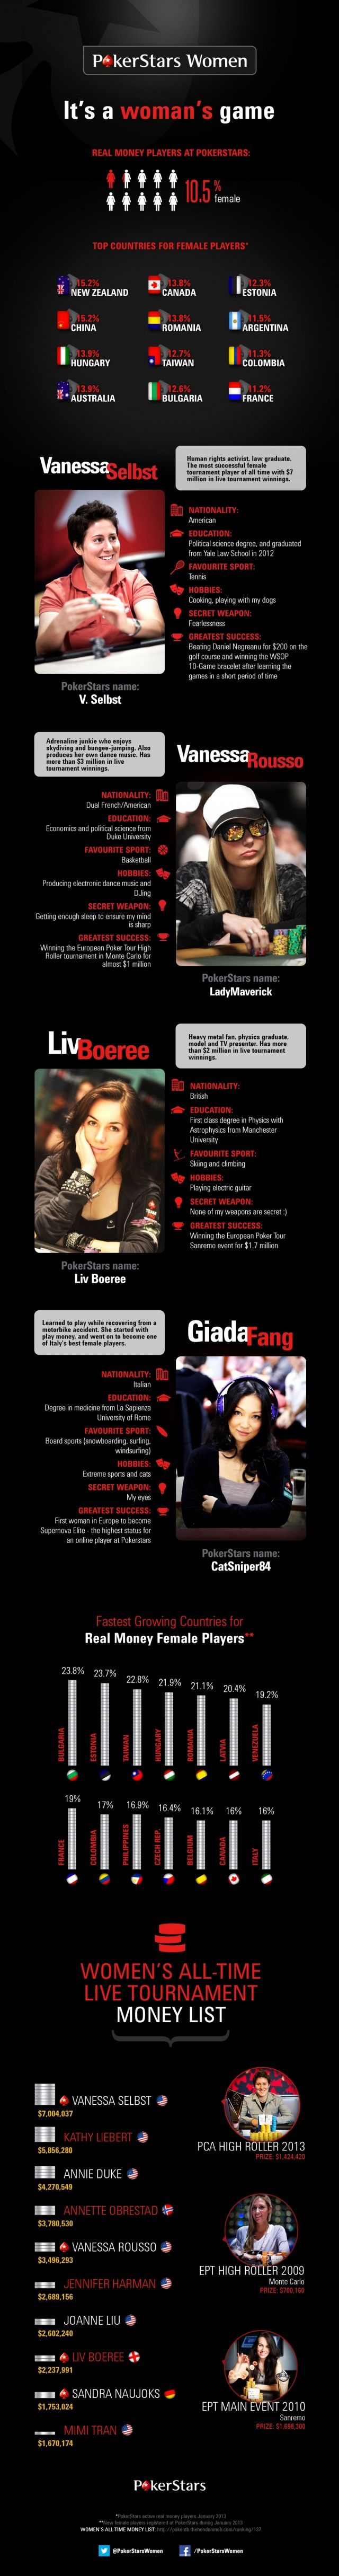 Women Poker Stars Around the World - not only a nice infographic, pretty impressive information on some kick butt women poker players!